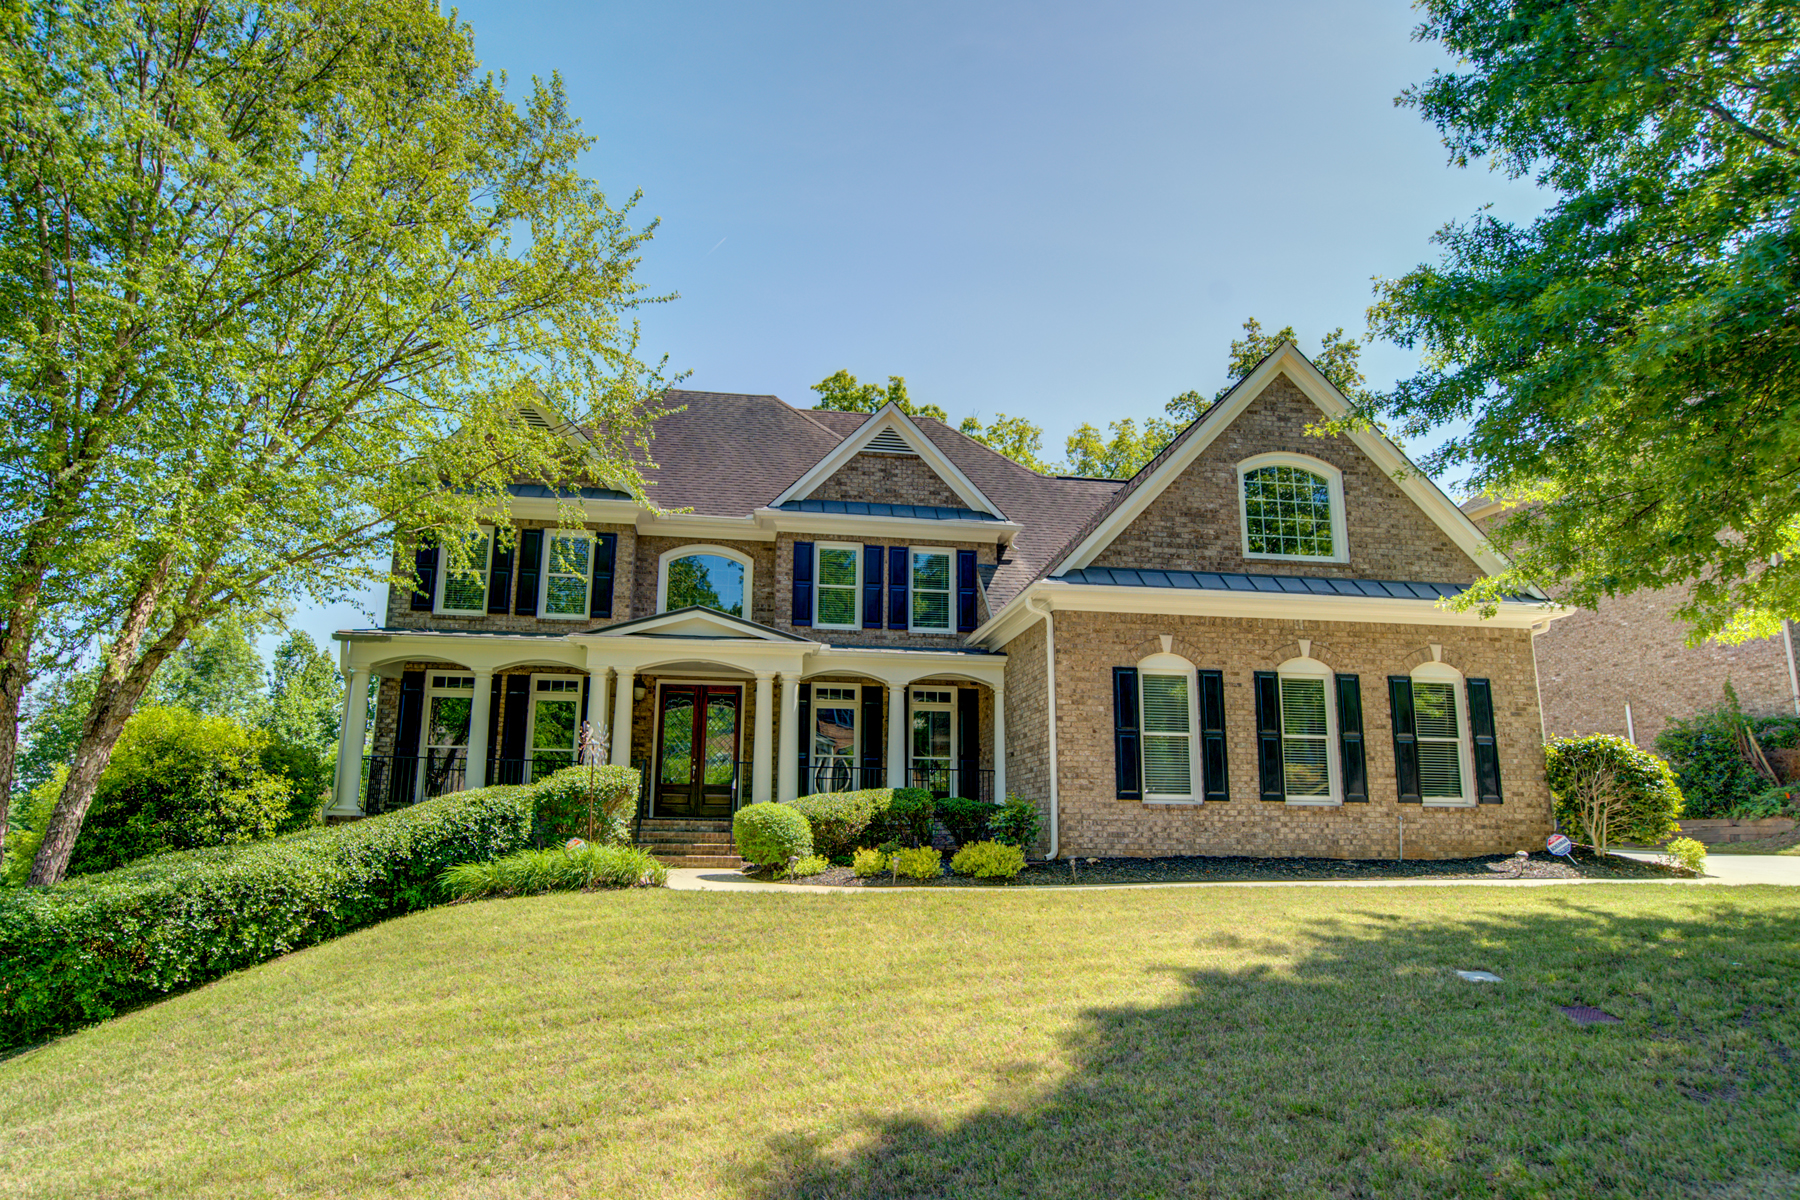 Single Family Homes for Active at Incredible Find in Beautiful Vinings Estates 1408 Oakridge View Drive Mableton, Georgia 30126 United States